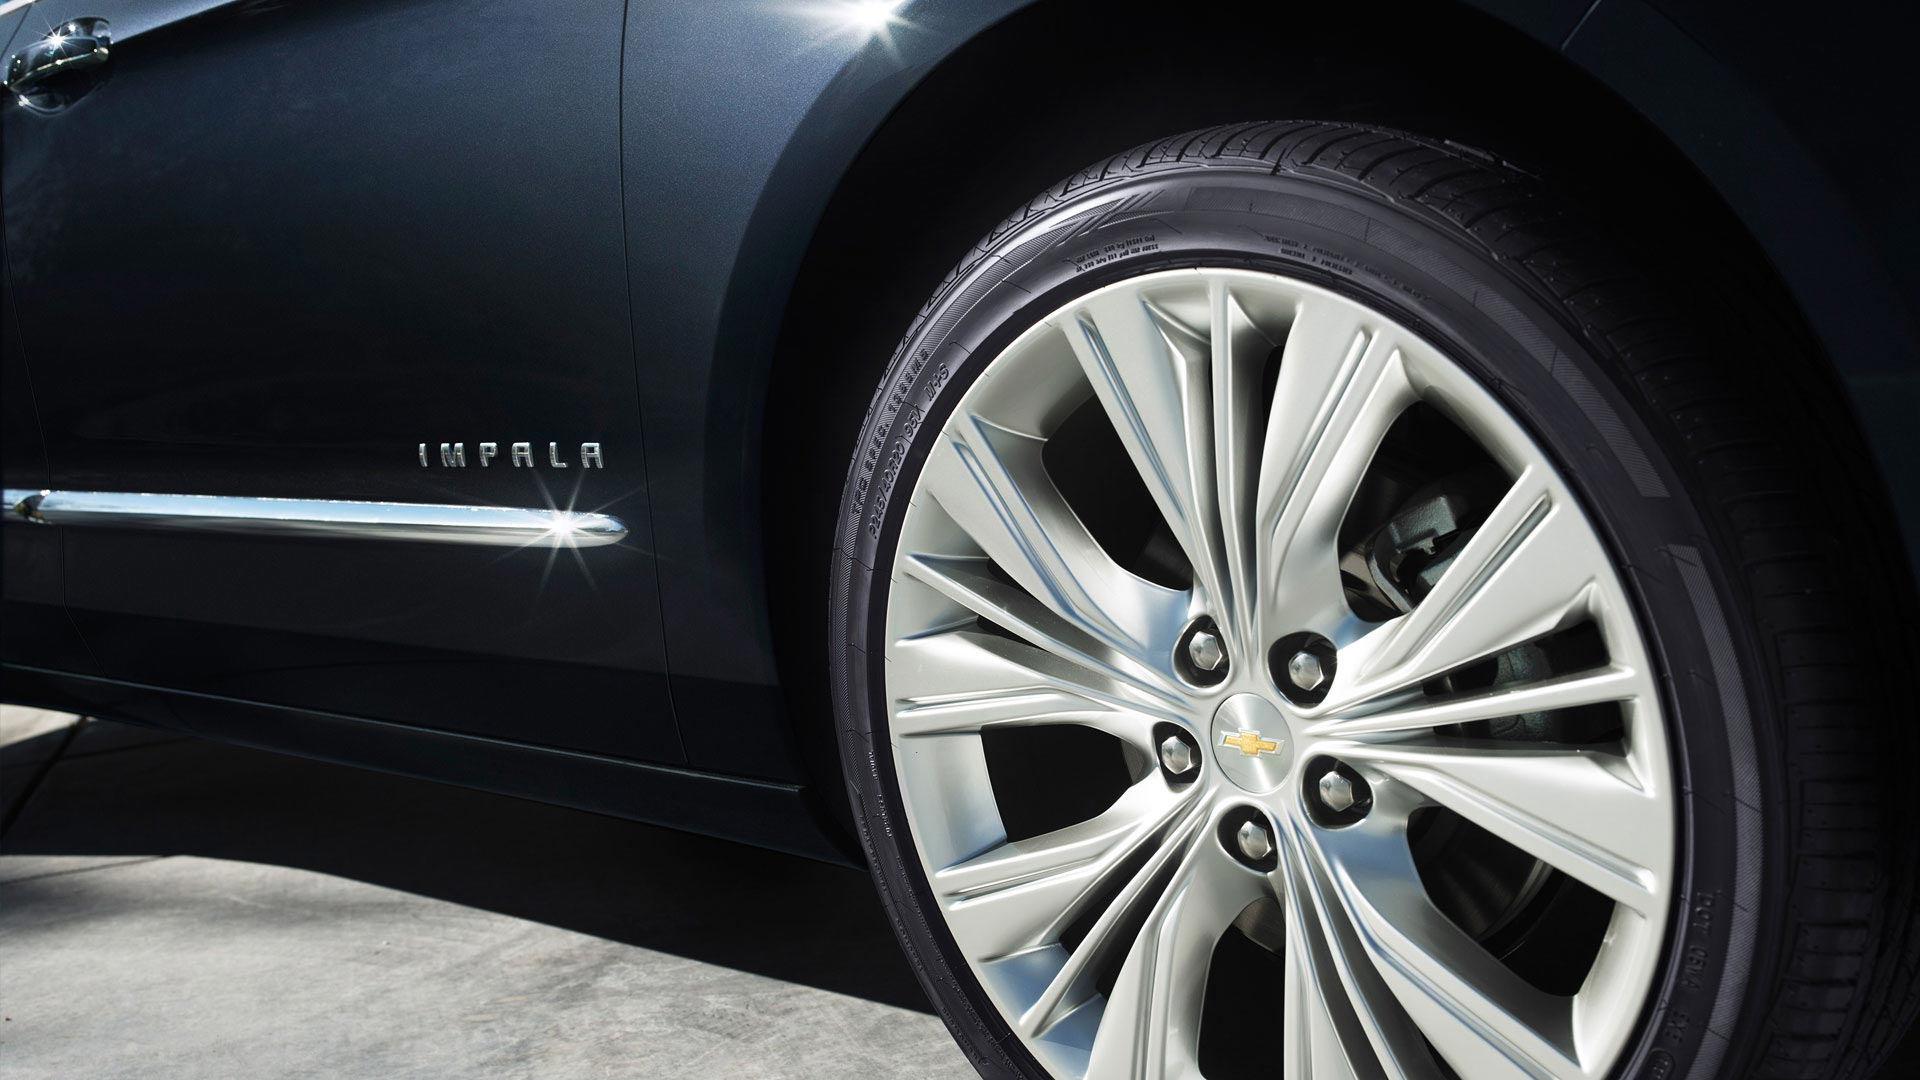 2016 Chevy Impala Wheels